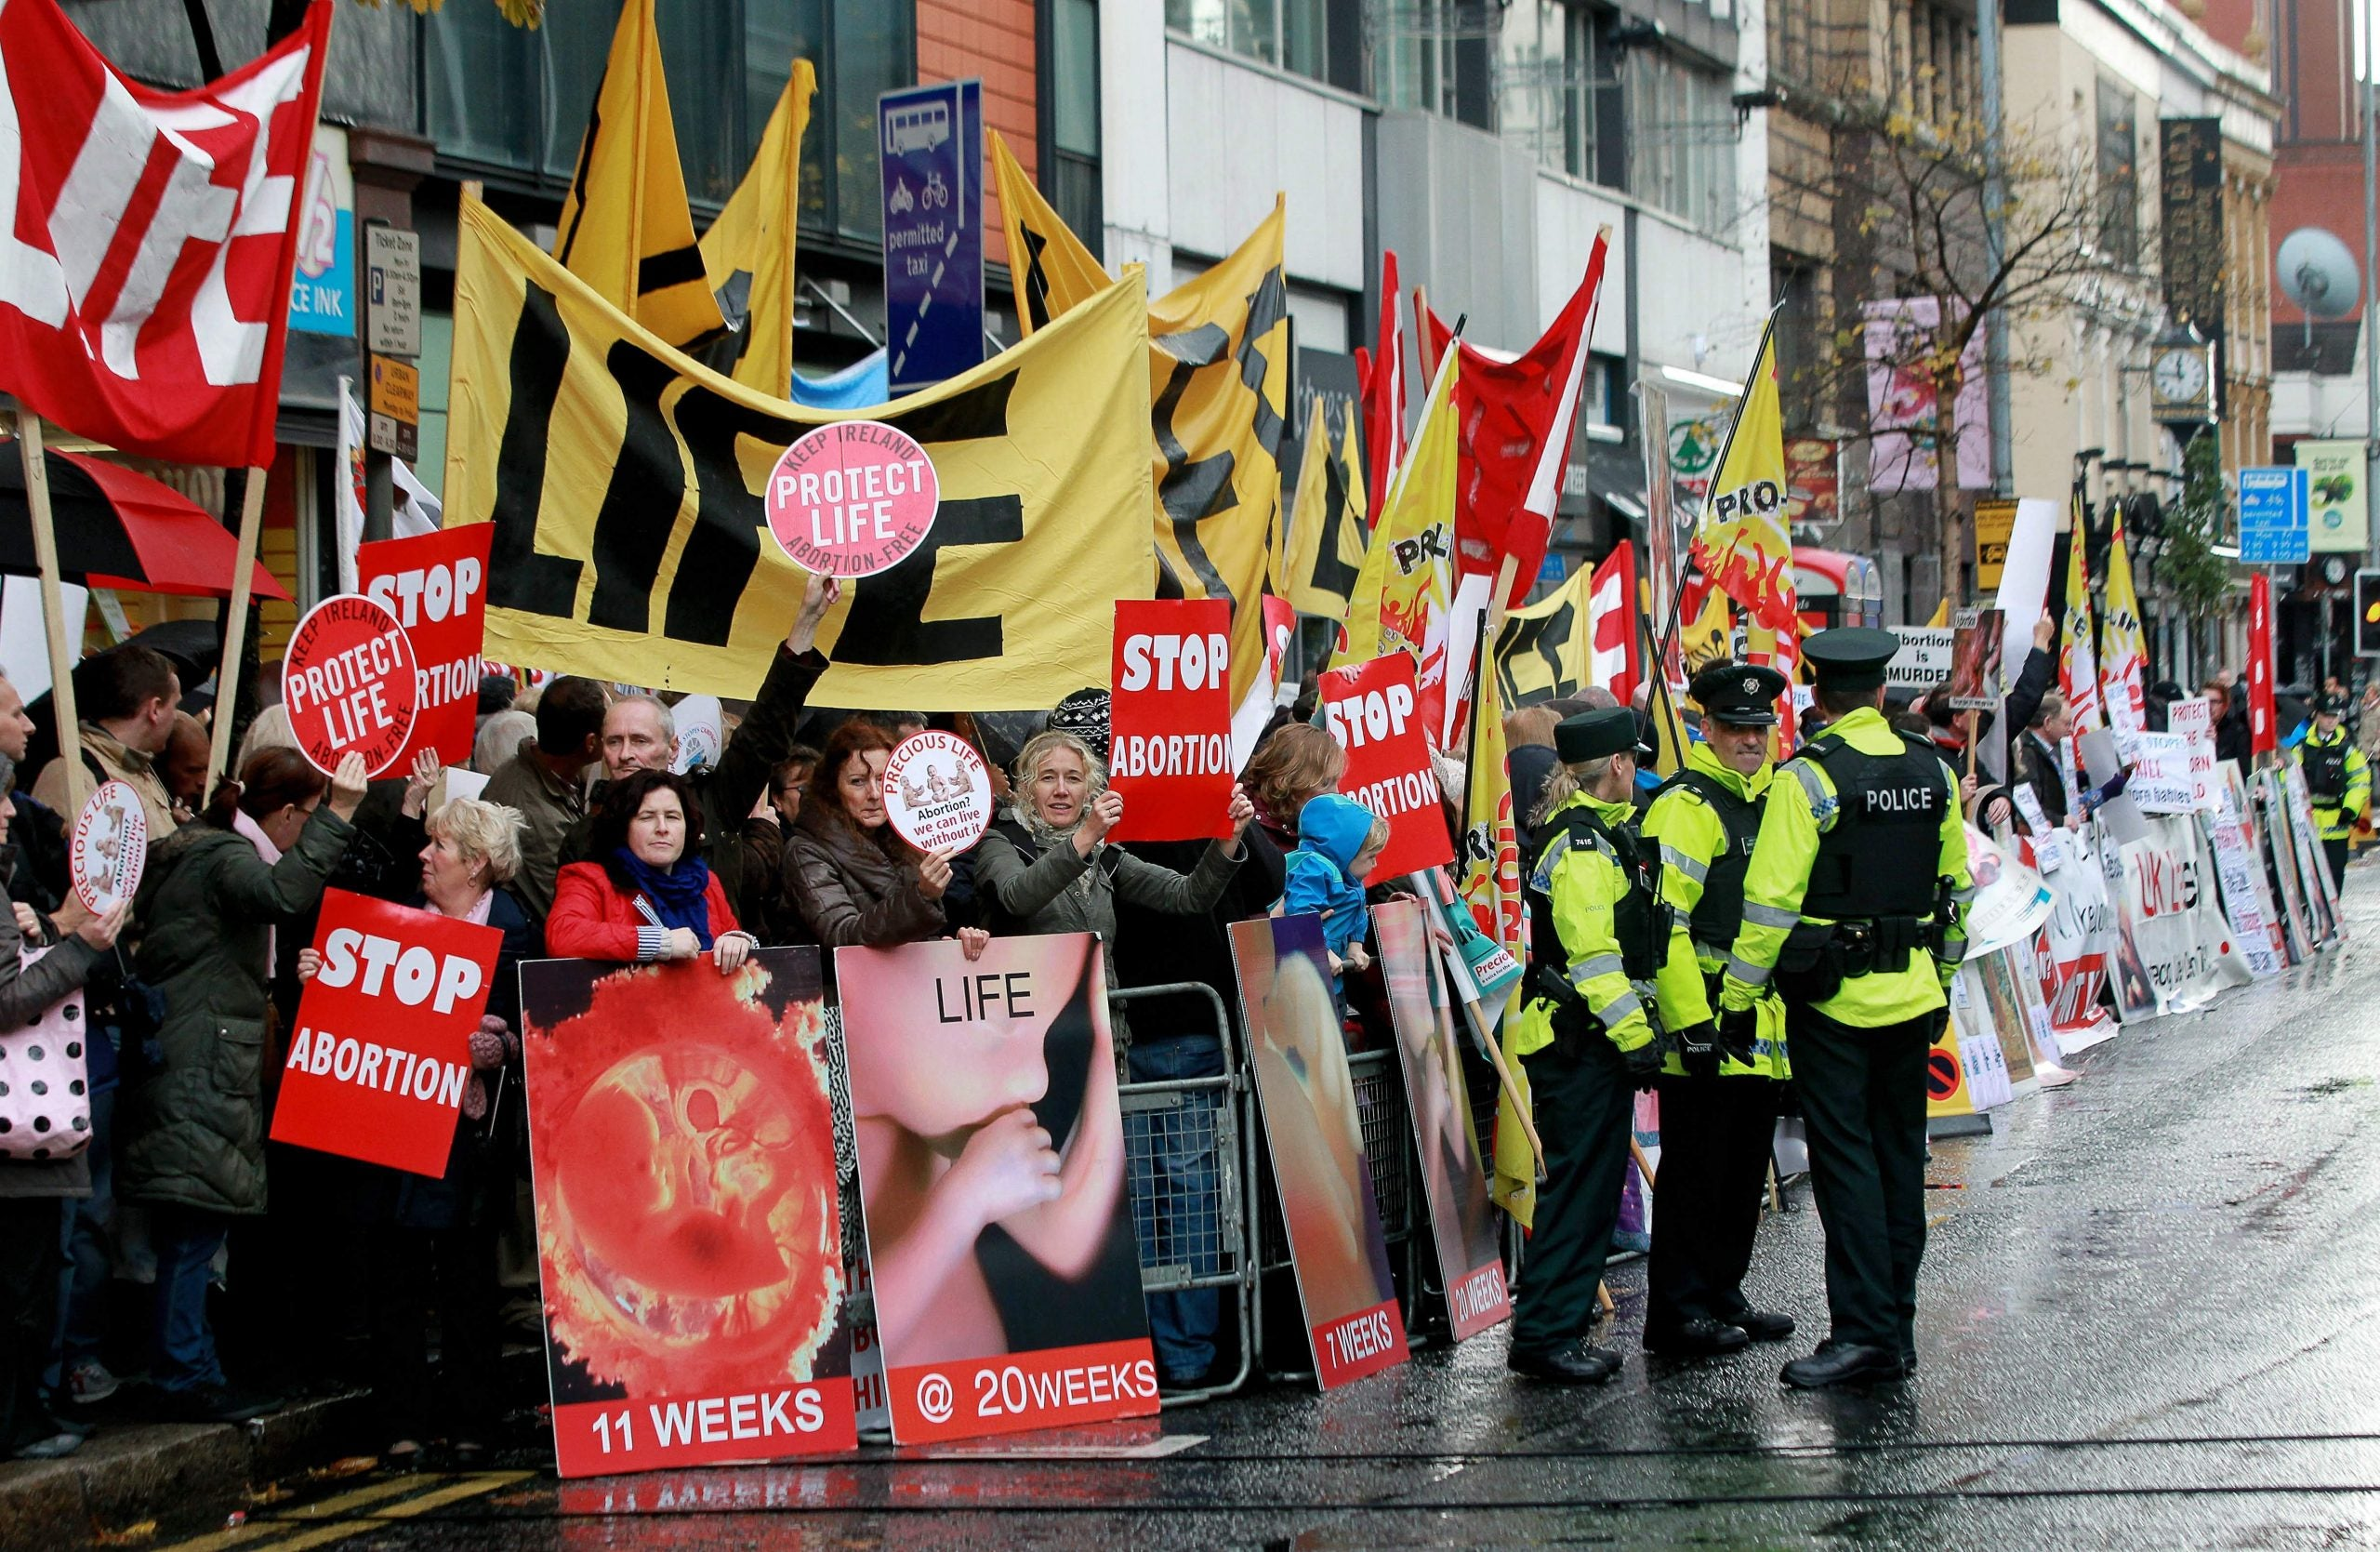 How long can Northern Ireland's draconian abortion laws survive?